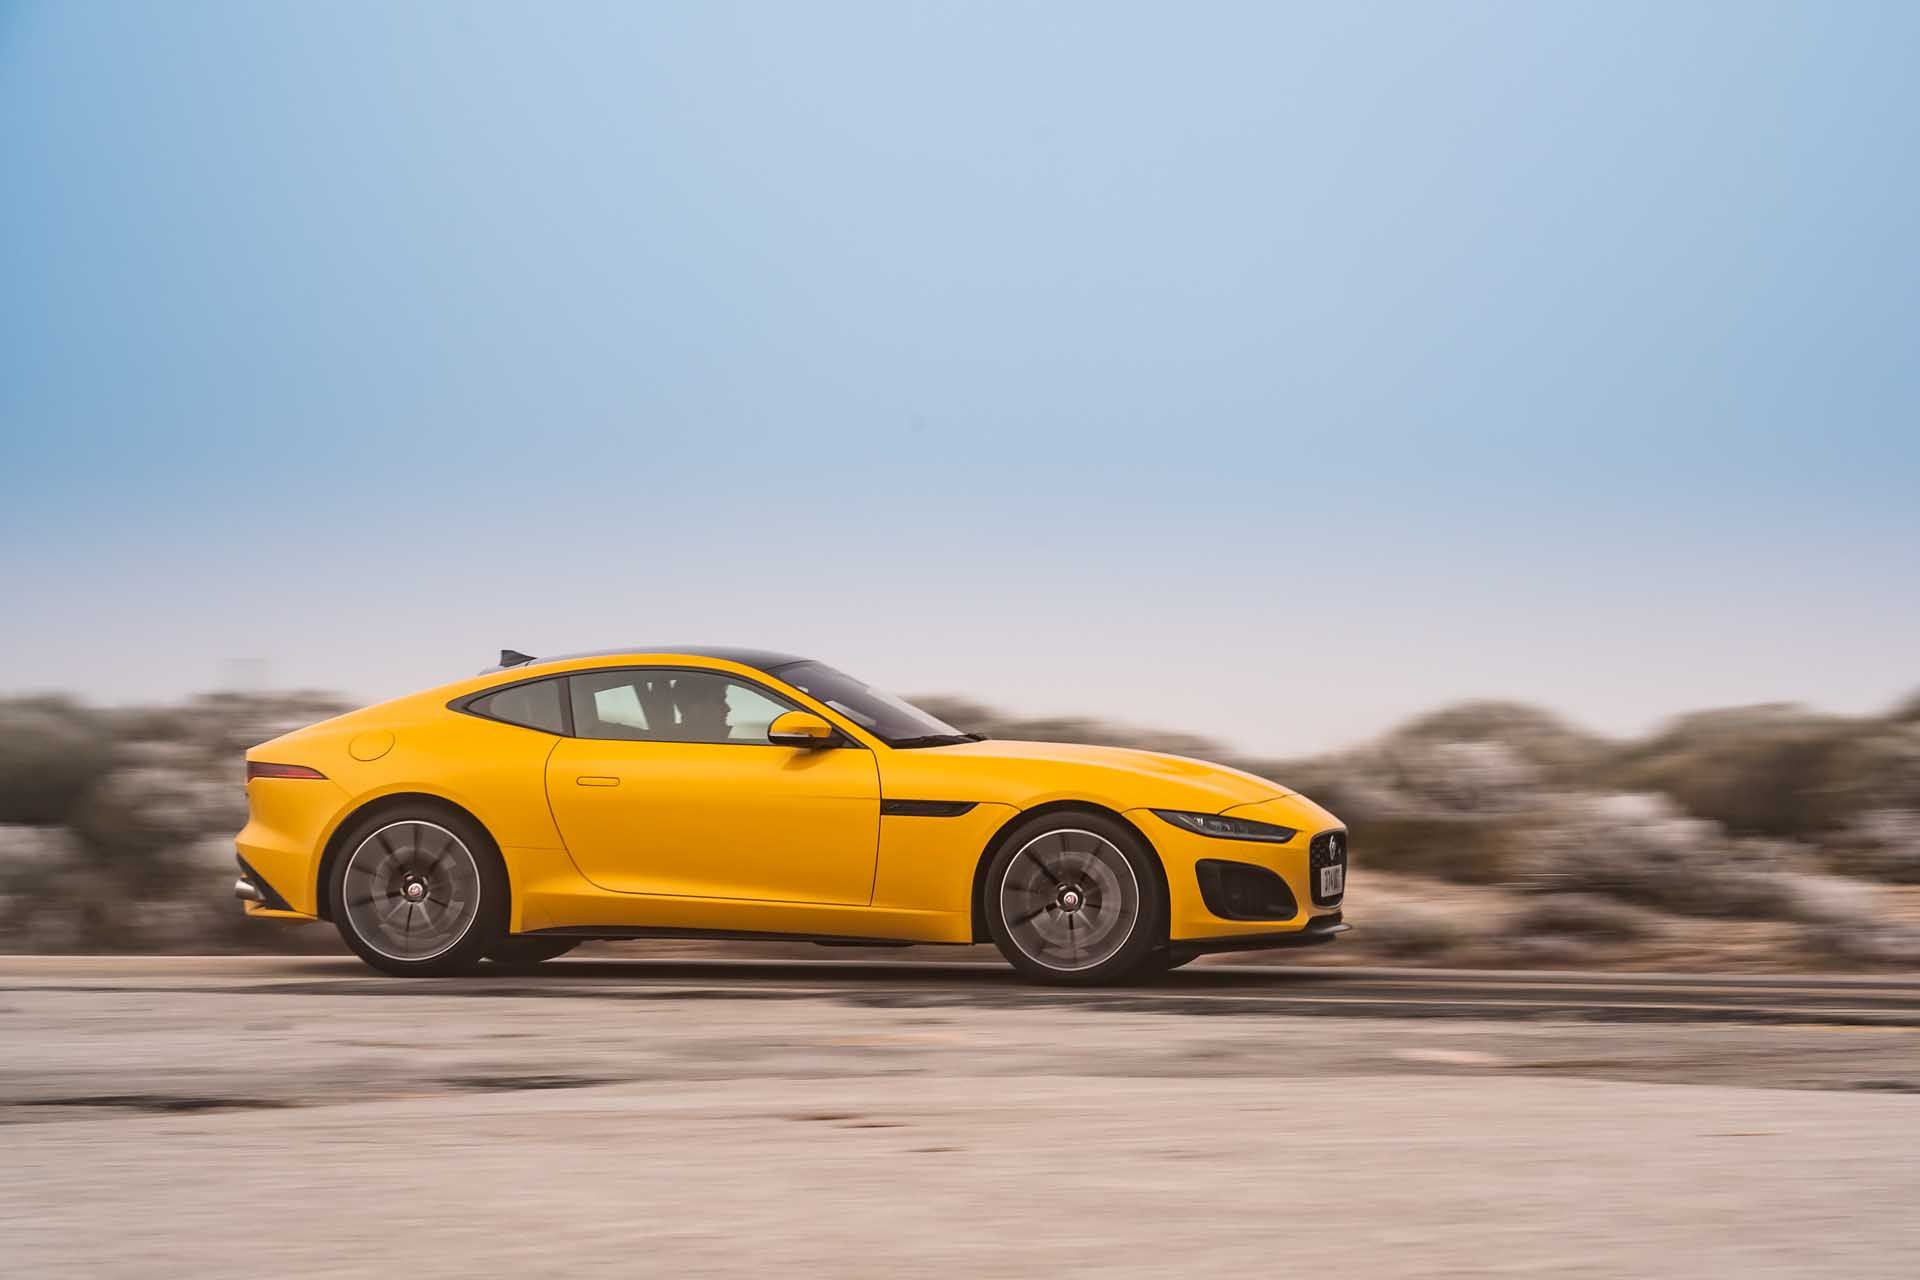 2021 Jaguar F Type First Drive Review All The Feels In 2020 Jaguar F Type First Drive Jaguar